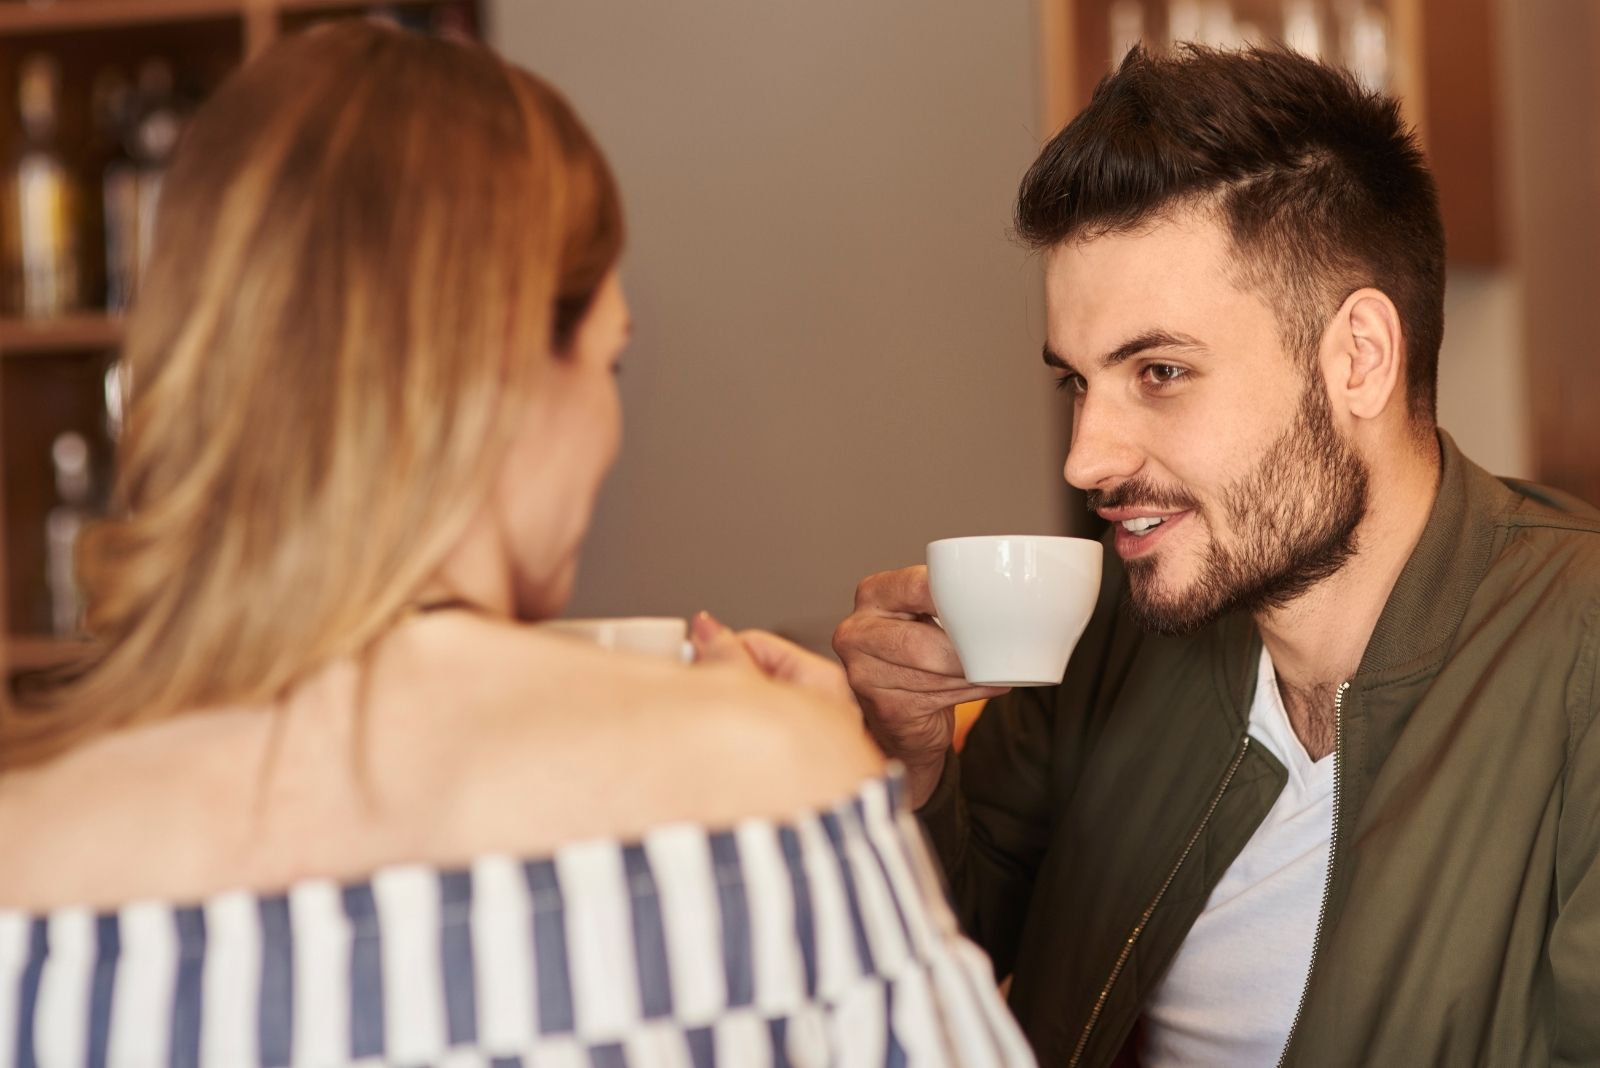 dating couple enjoying coffee and chatting indoors